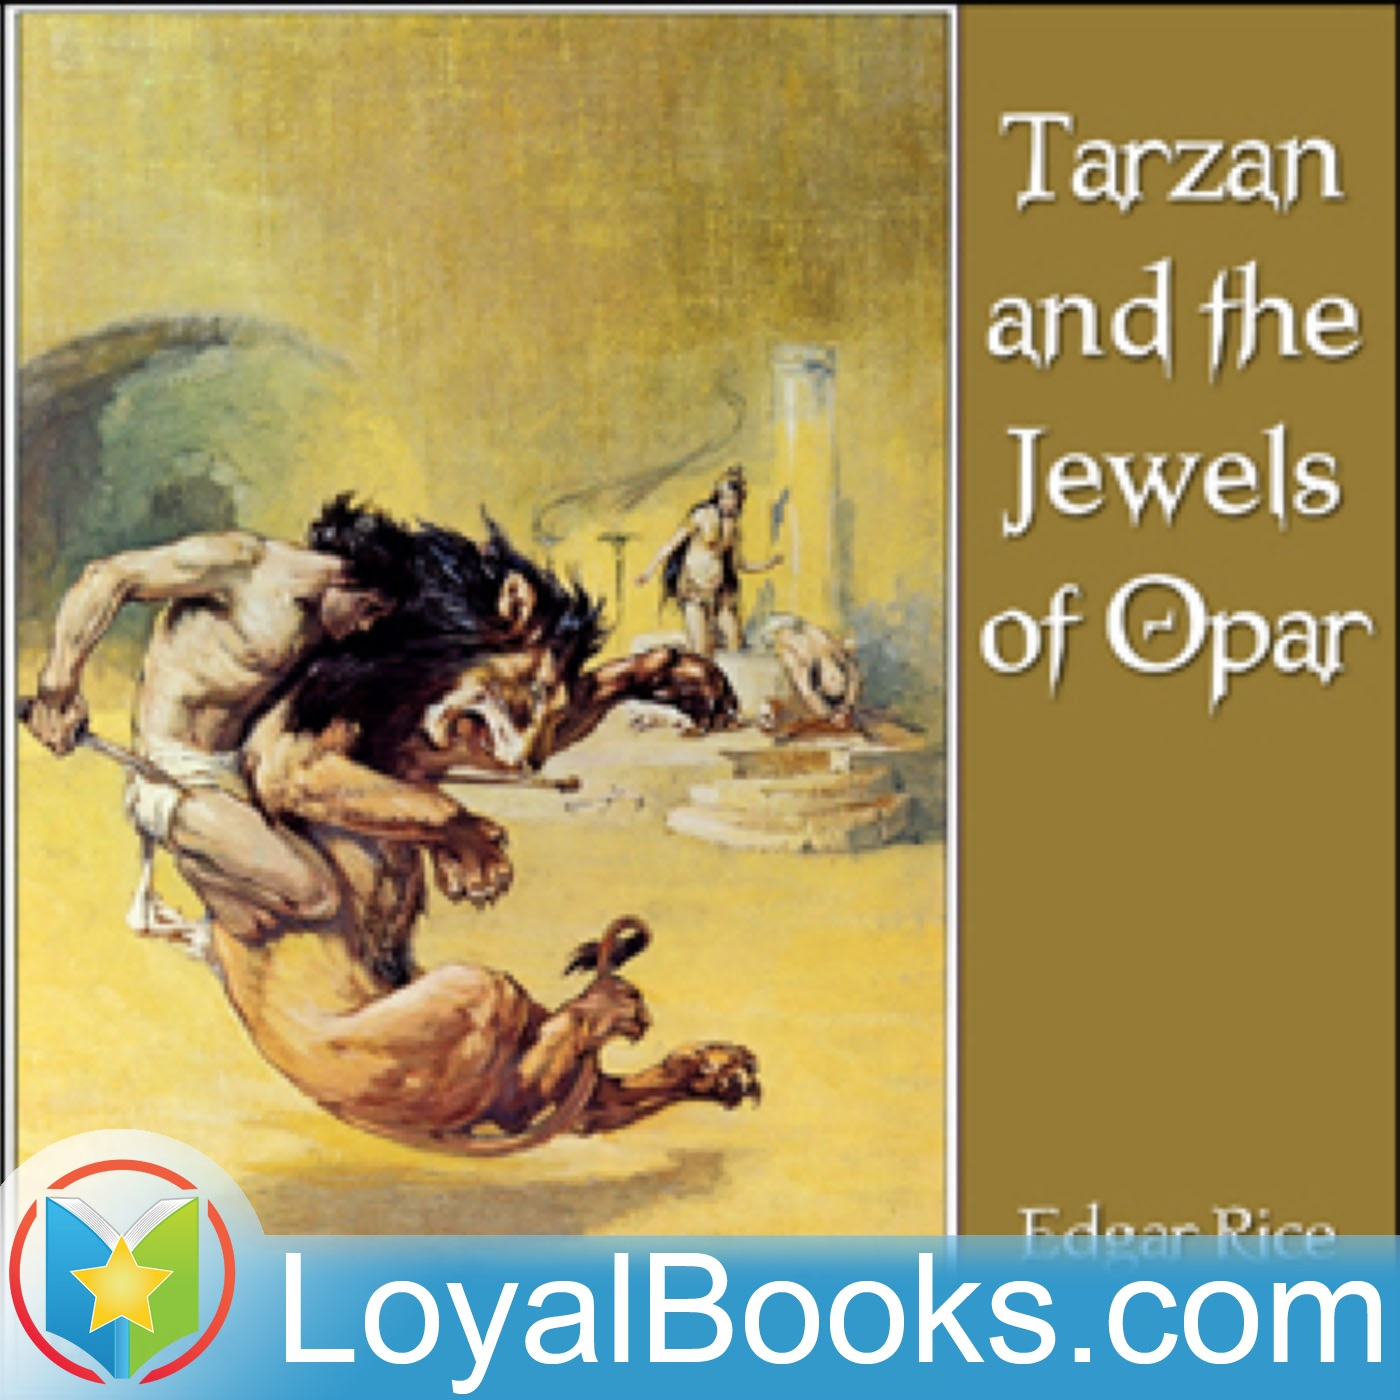 <![CDATA[Tarzan and the Jewels of Opar by Edgar Rice Burroughs]]>